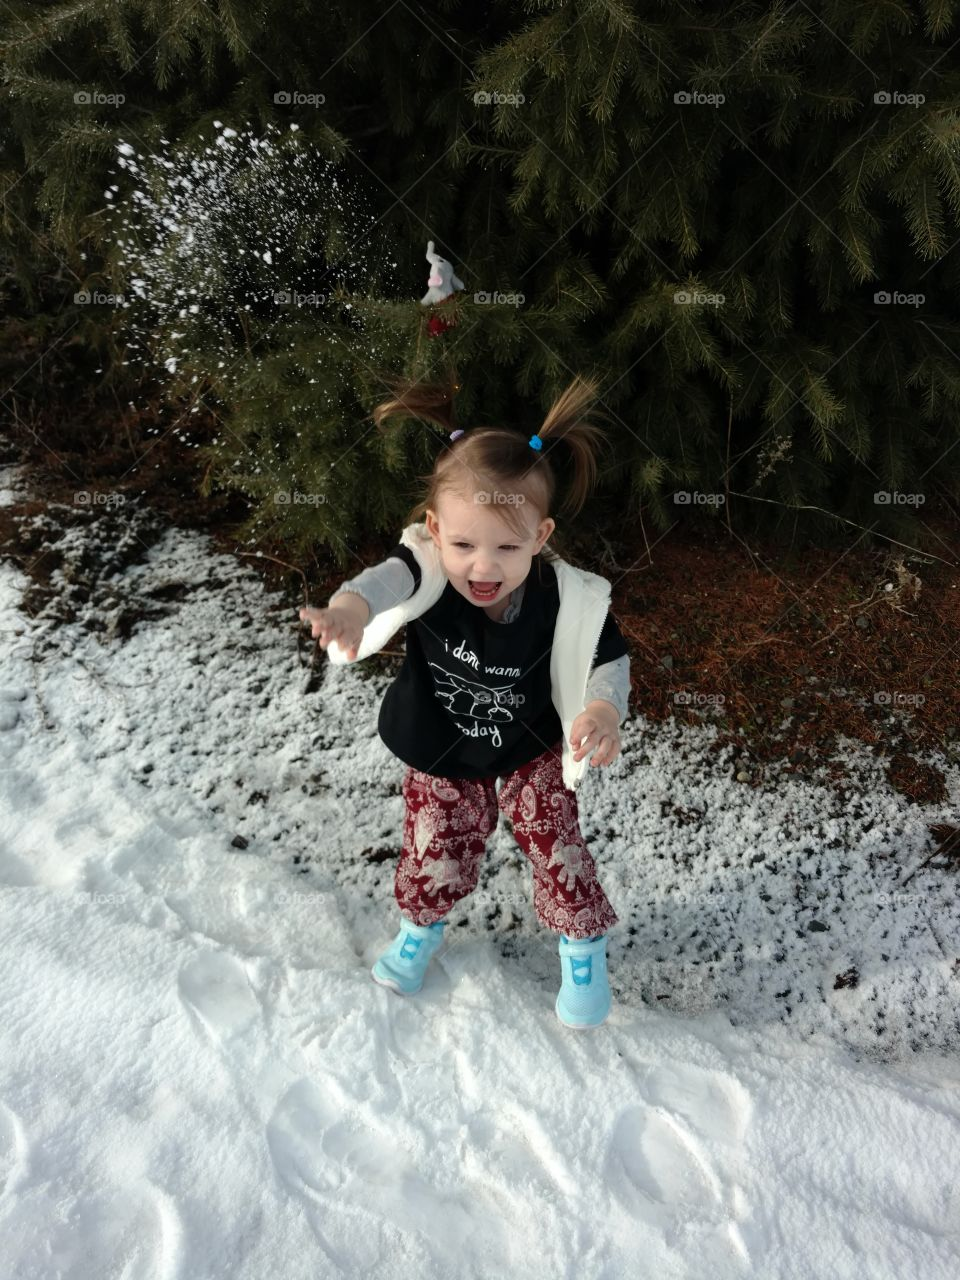 Cute girl playing with snow